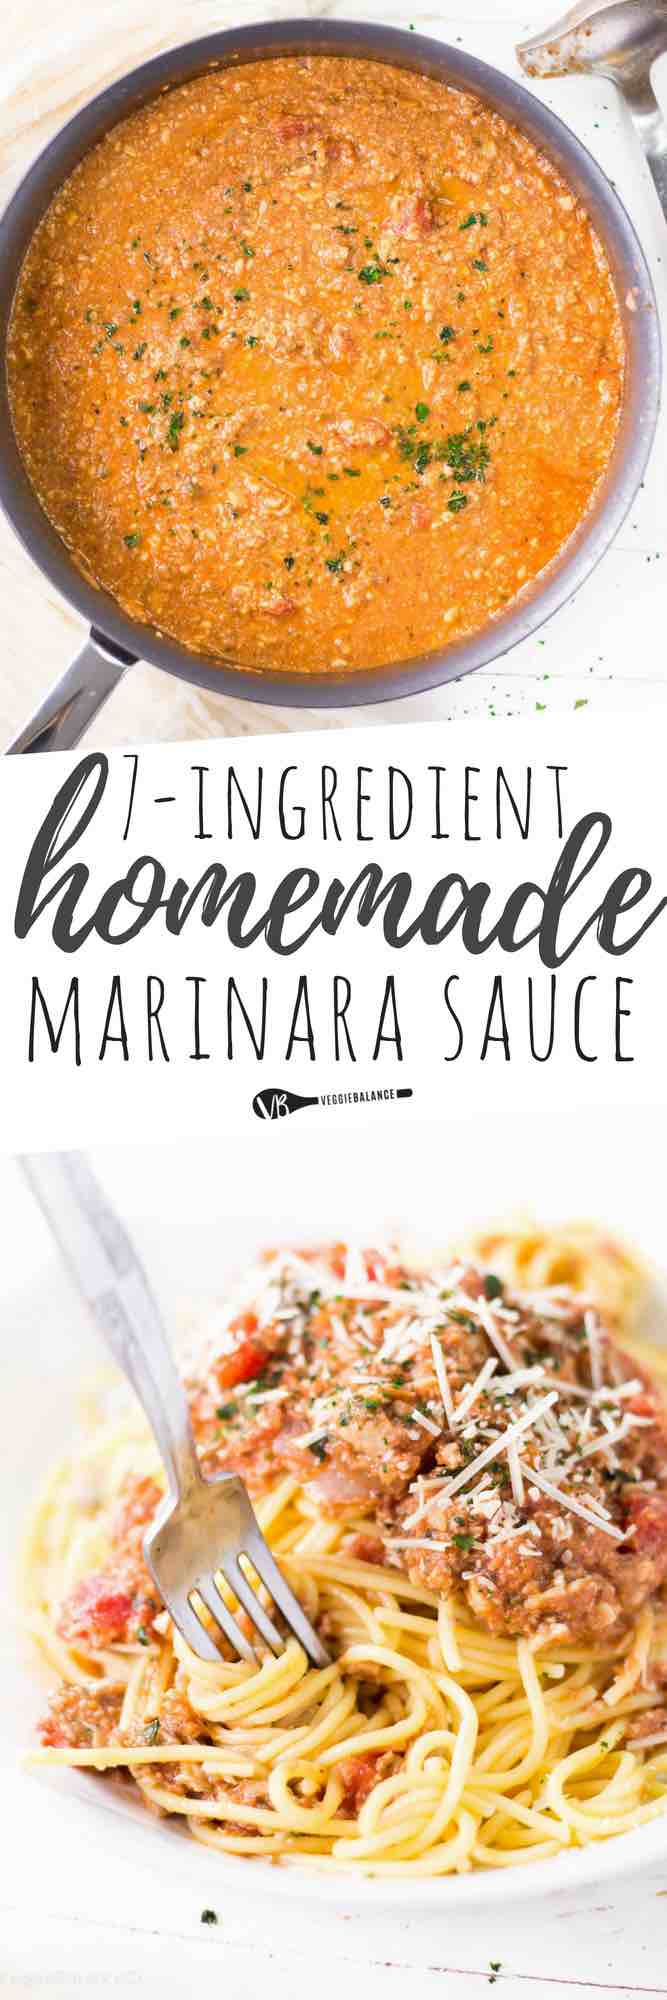 Easy Homemade Spaghetti Sauce made with all natural ingredients. Completely versatile sauce adapting to your tastes but adding your favorite ingredients like mushrooms, artichokes, olives! #glutenfree #homemade #dinnerrecipes #dinnerideas #vegan #veganrecipes #vegetarian #vegetarianrecipes #healthy #healthyrecipes